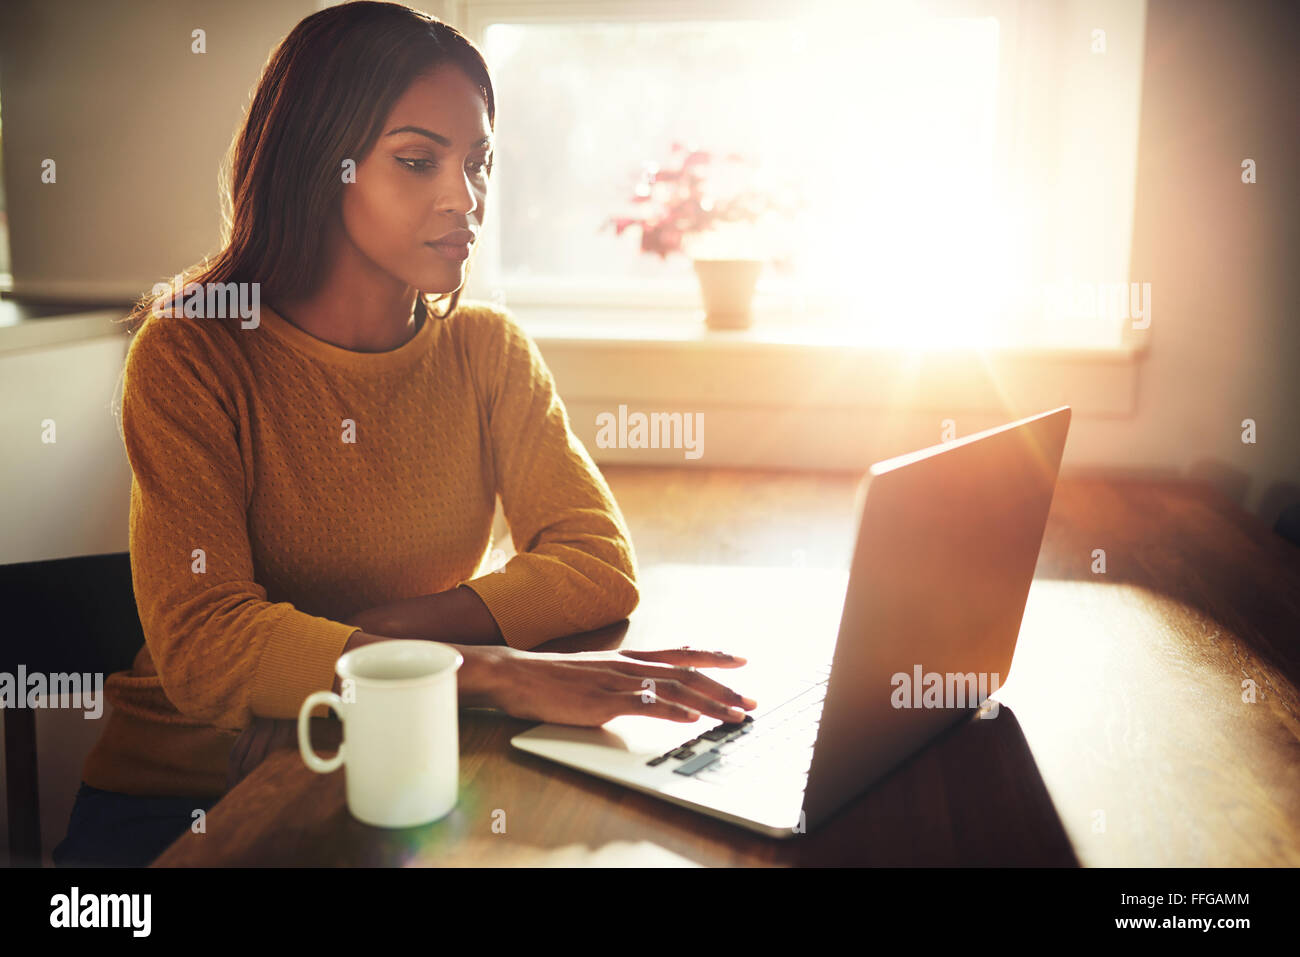 Gorgeous black single female sitting at table with cup and typing on laptop with bright sun coming through window - Stock Image